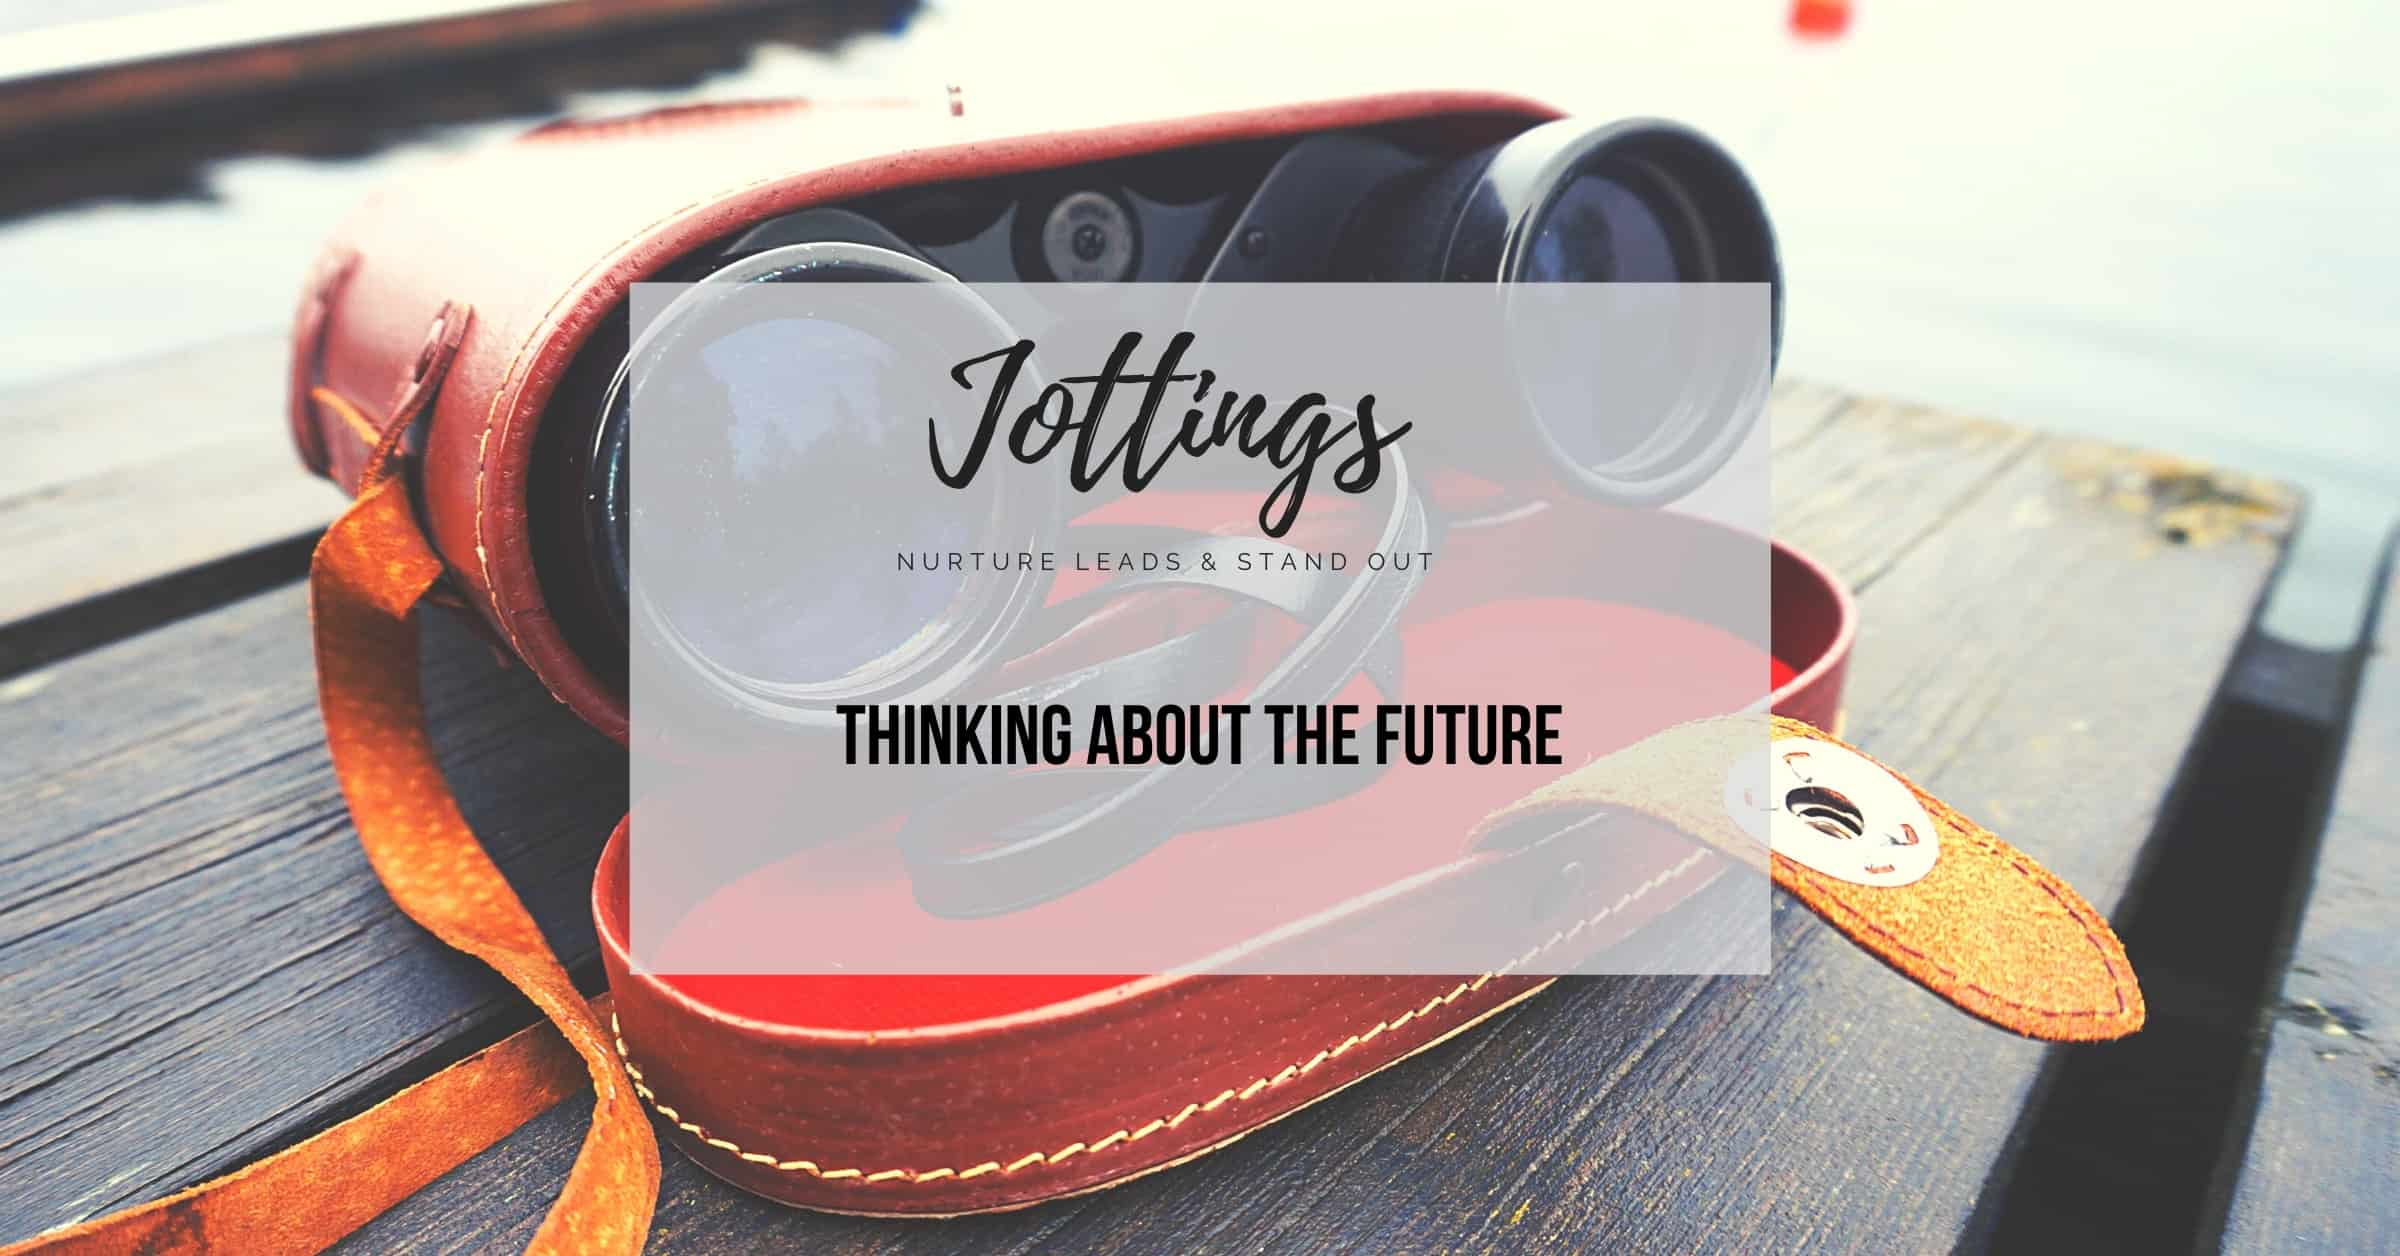 thinking-about-the-future-jottings